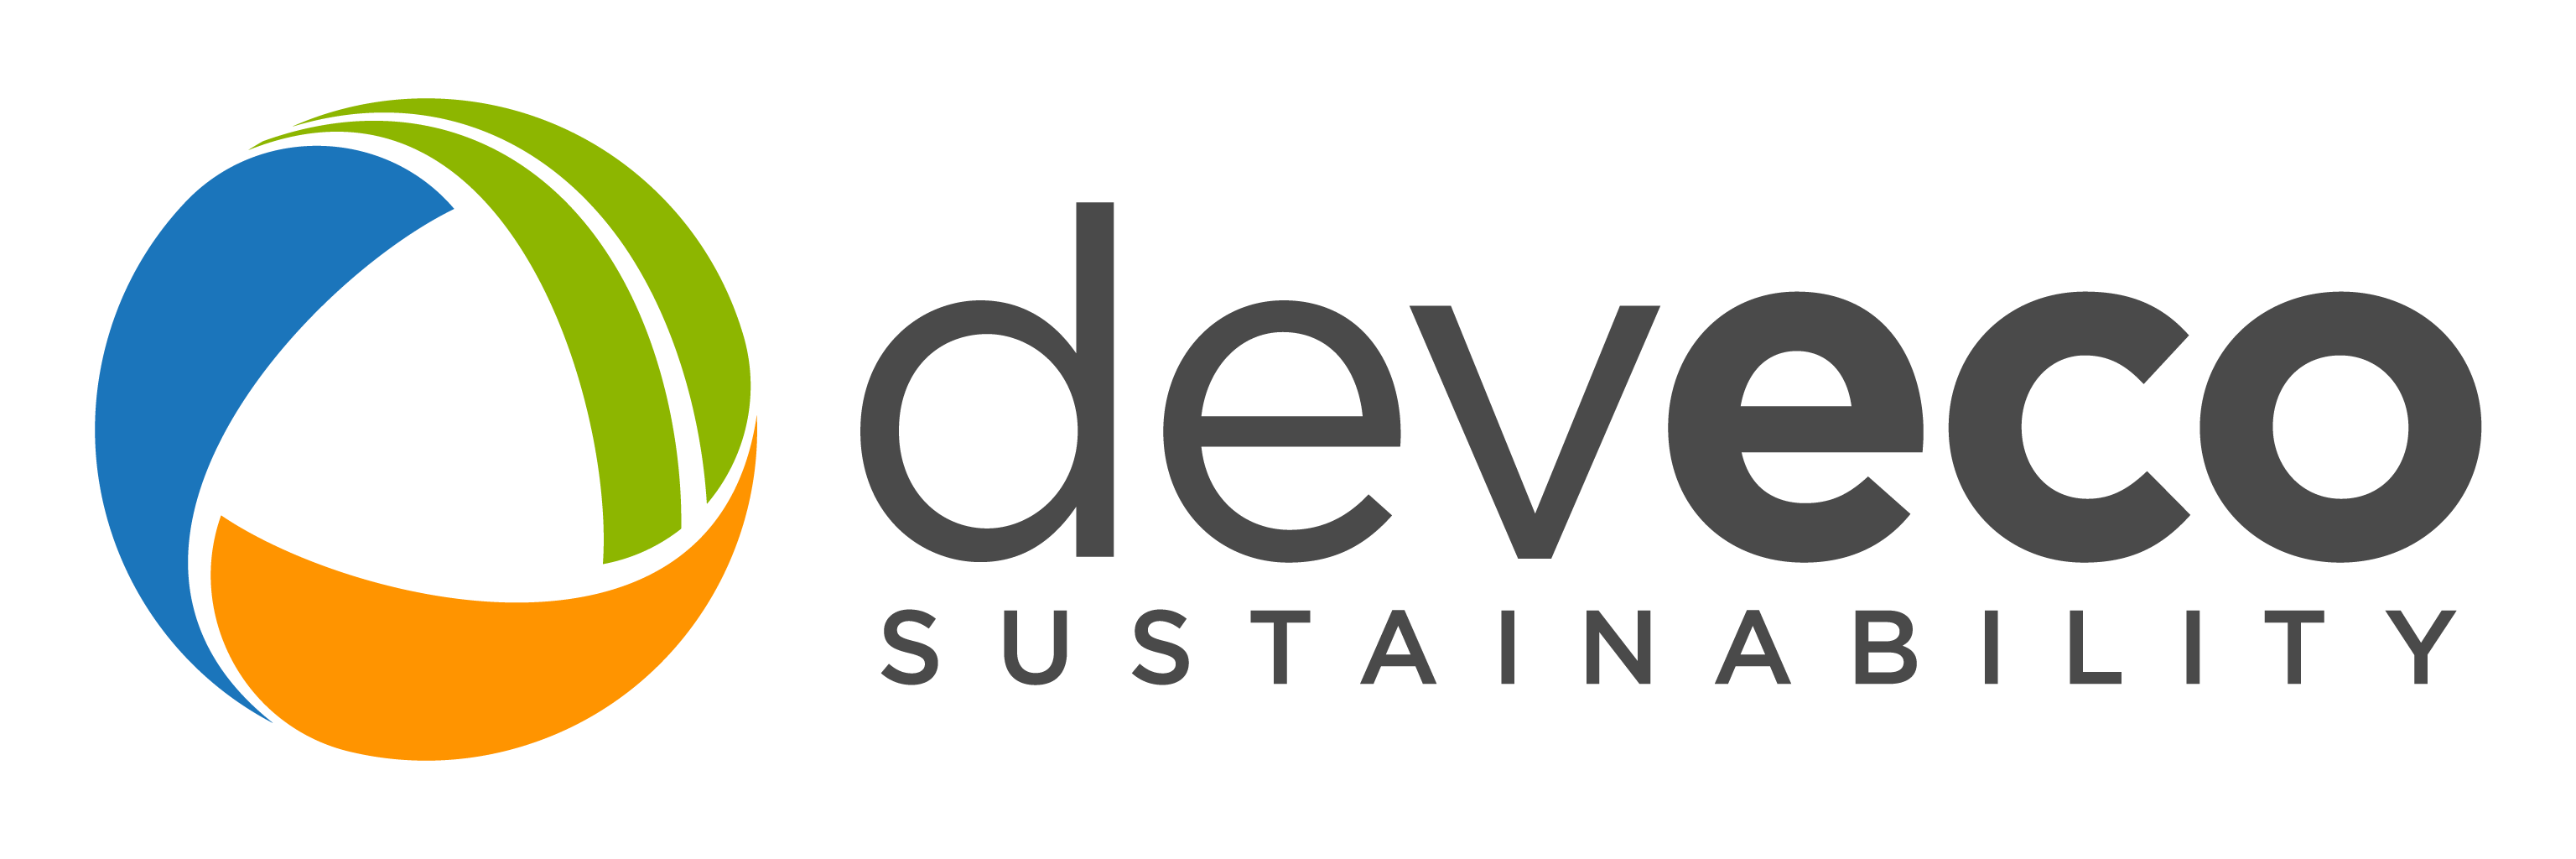 Logo for Startup Consulting Company in sustainable development and corporate social responsibility